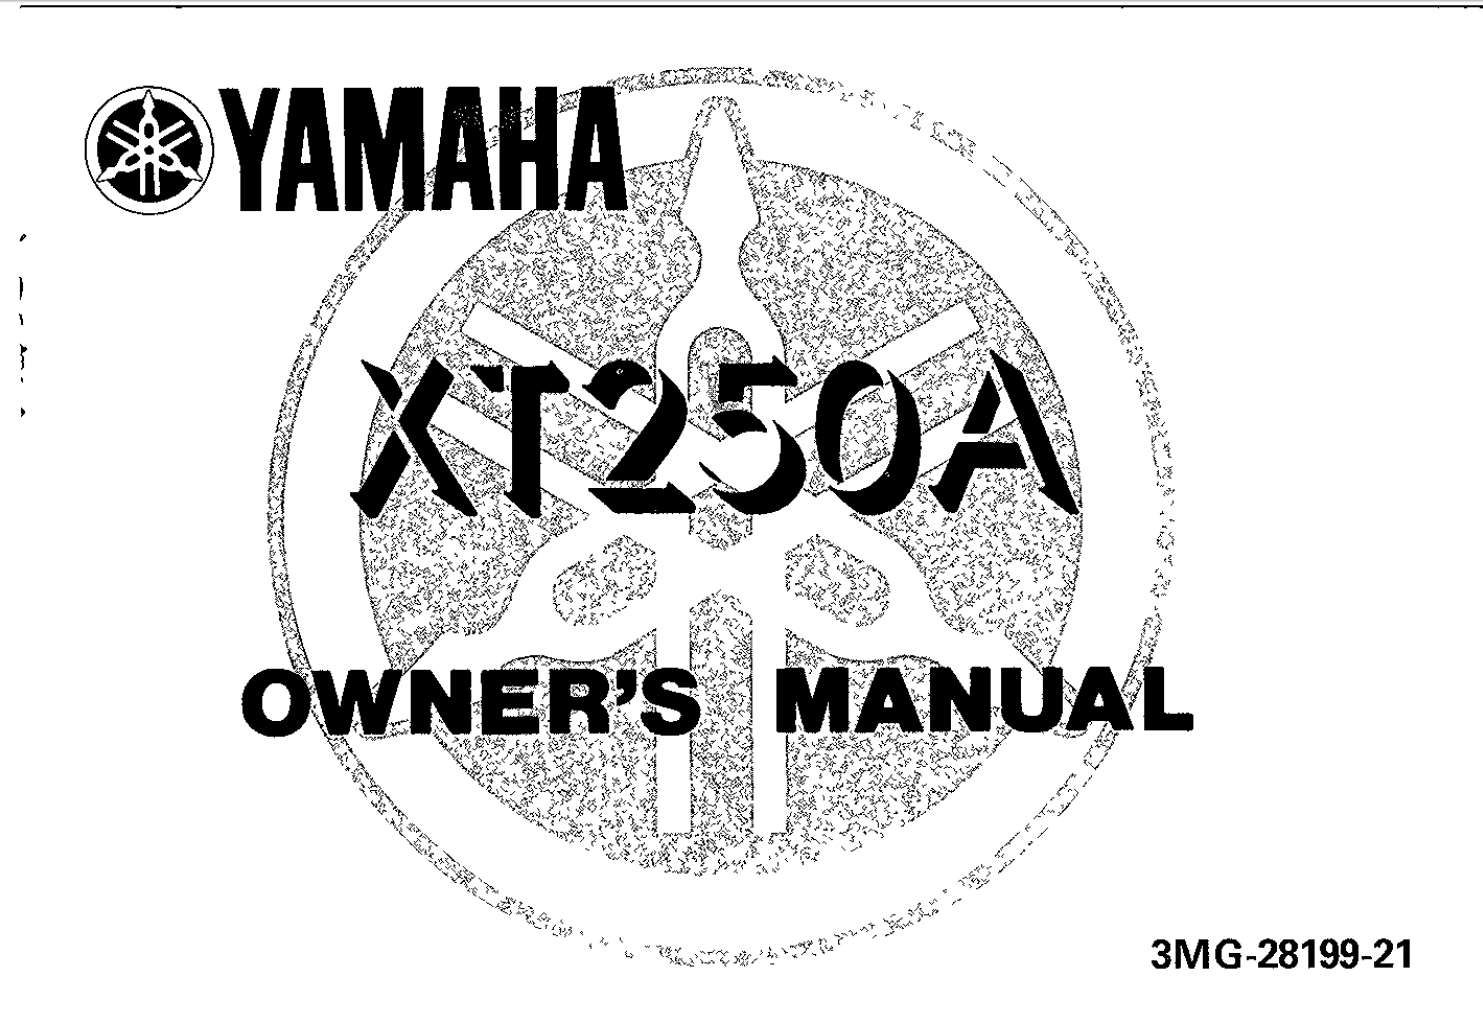 Yamaha XT250 A 1990 Owner's Manual has been published on